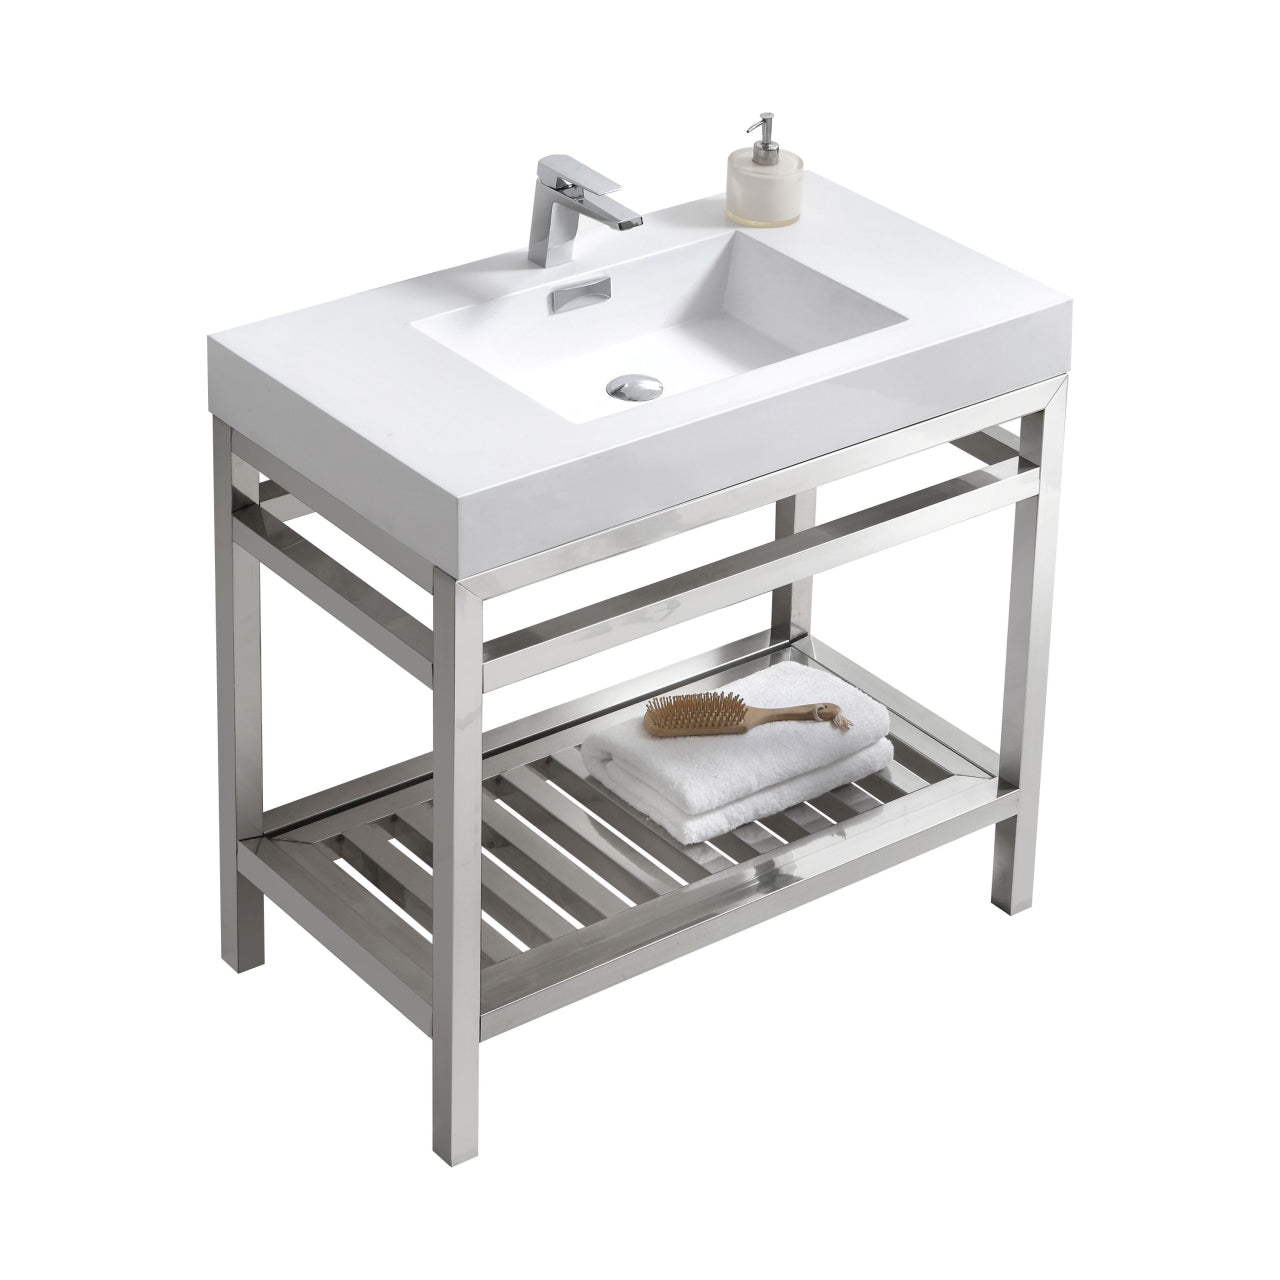 "Cisco 36"" Stainless Steel Console with Acrylic Sink - Chrome"